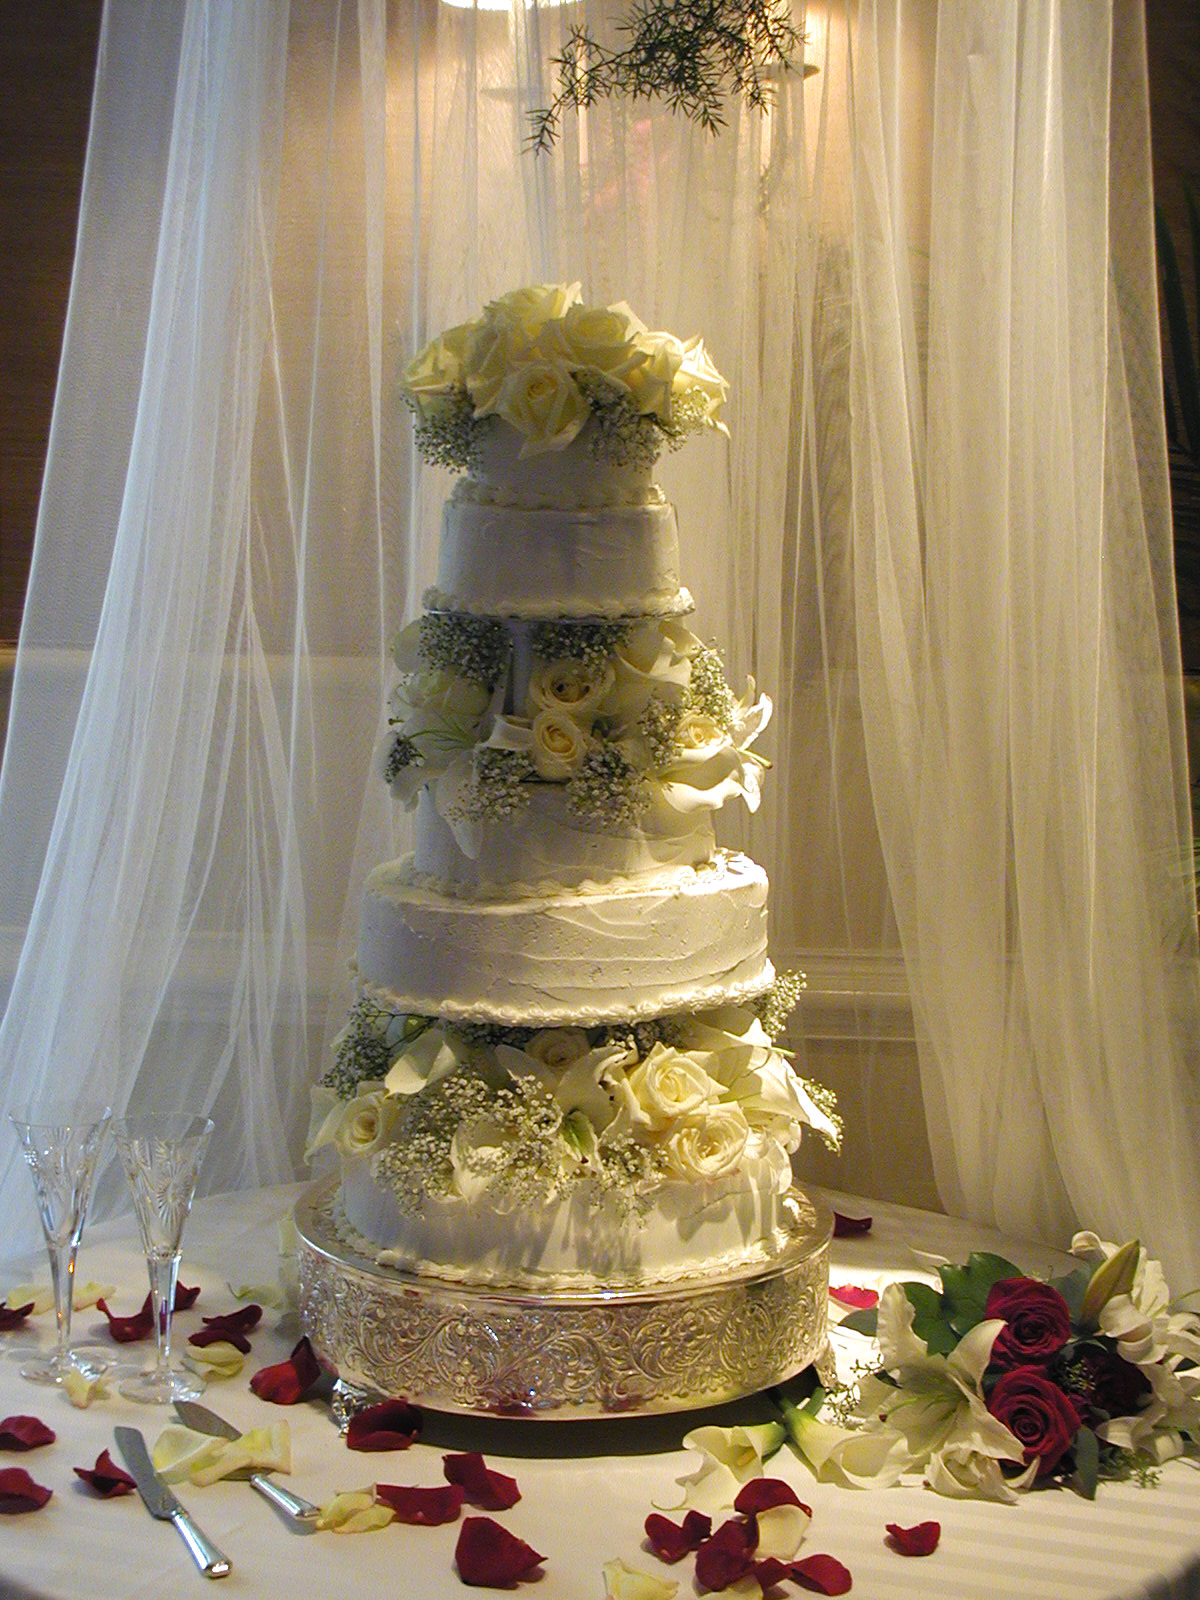 Rebuilt Wedding Cake.JPG